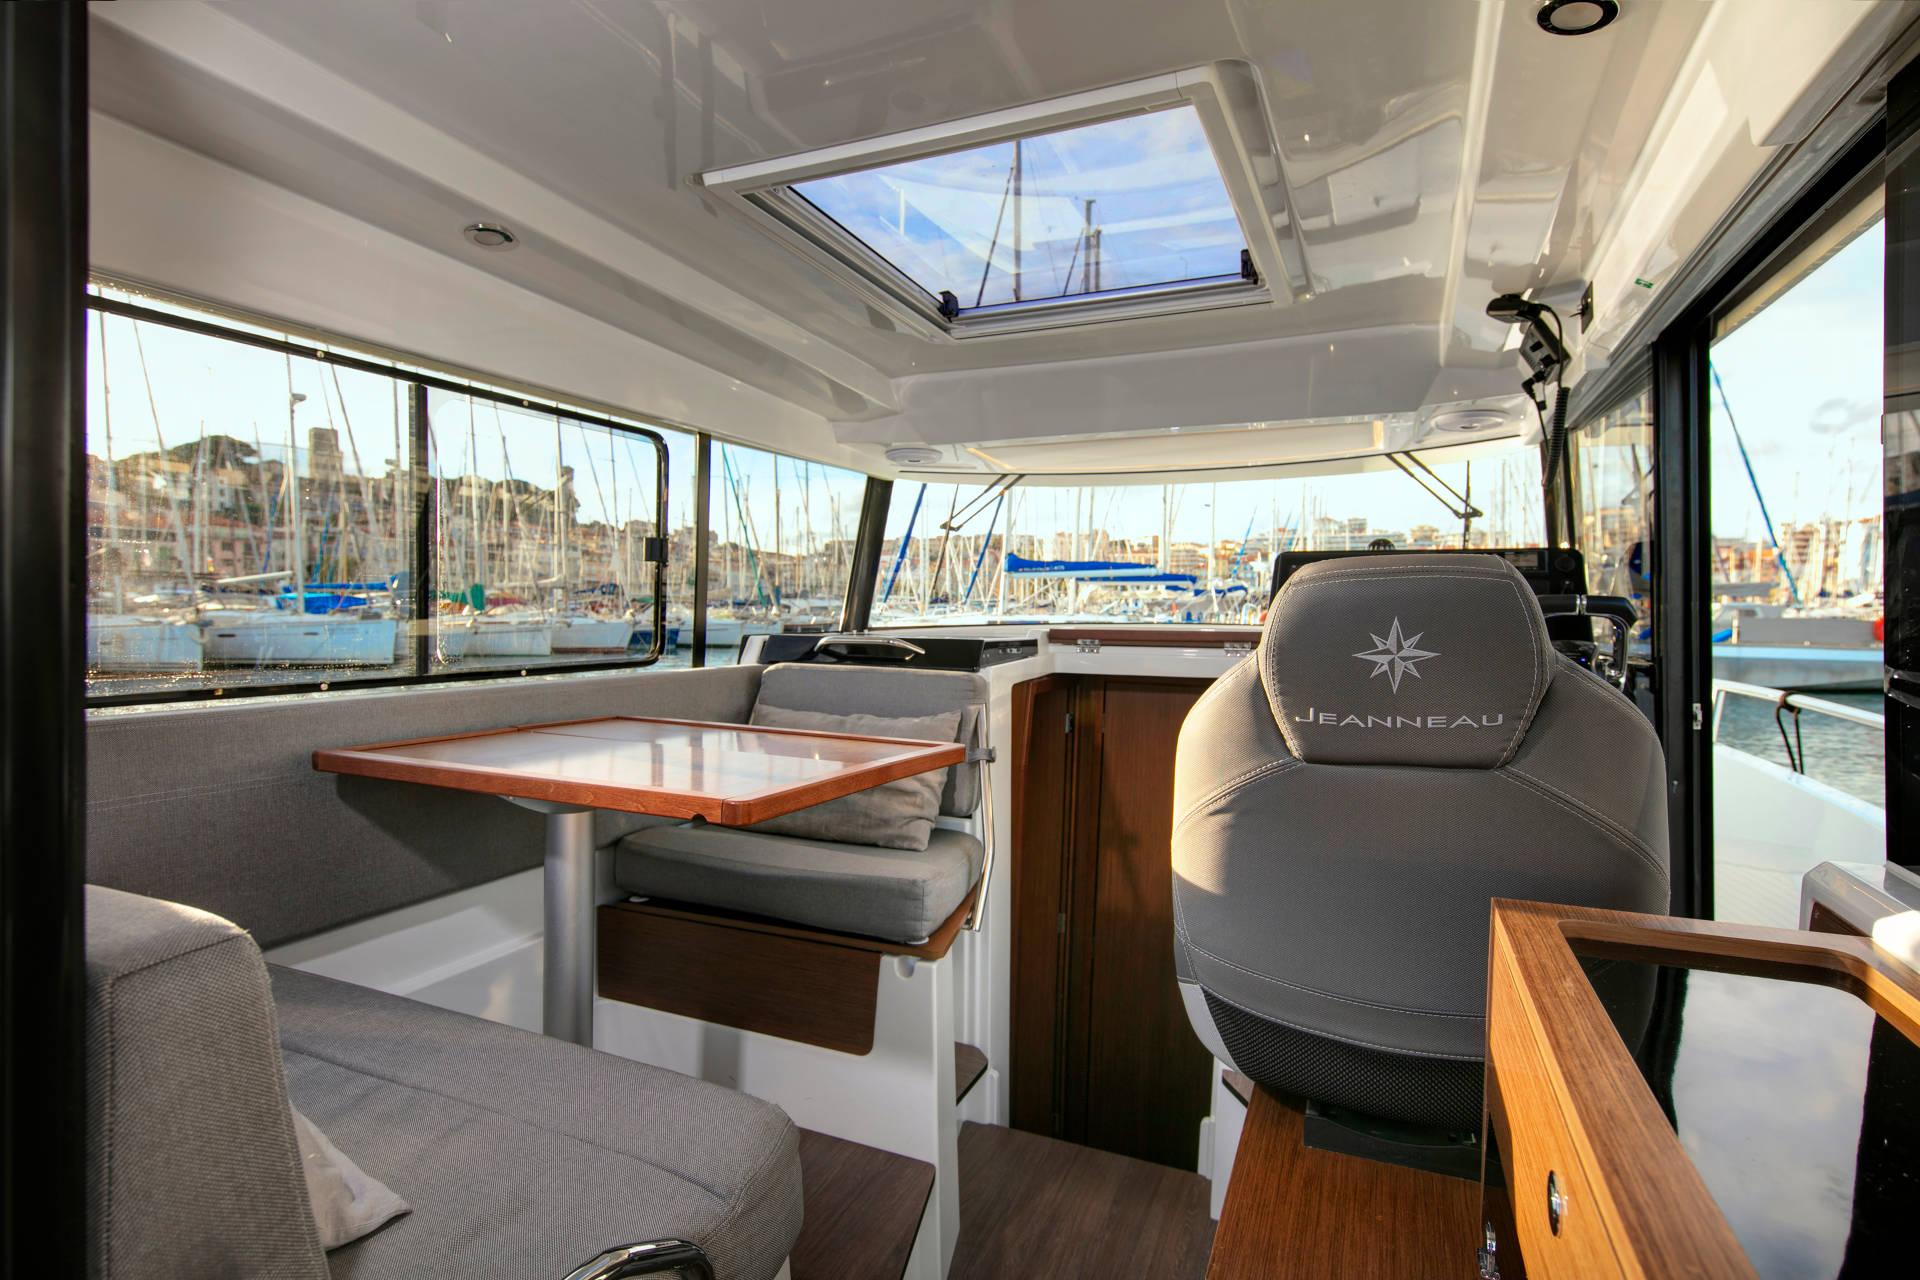 jeanneau 895 marlin interior upper deck